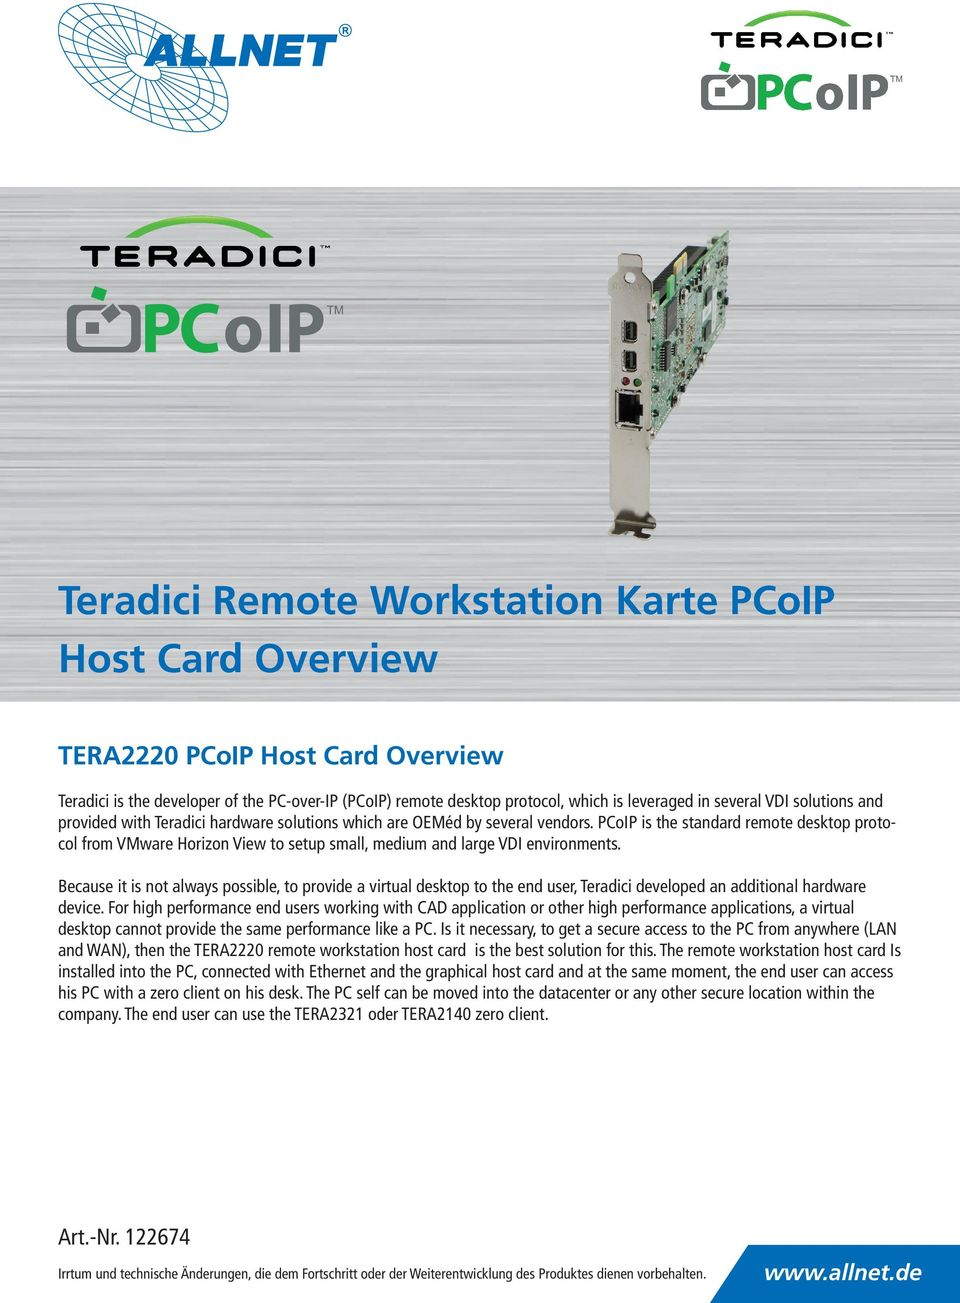 PCoIP is the standard remote desktop protocol from VMware Horizon View to setup small, medium and large VDI environments.